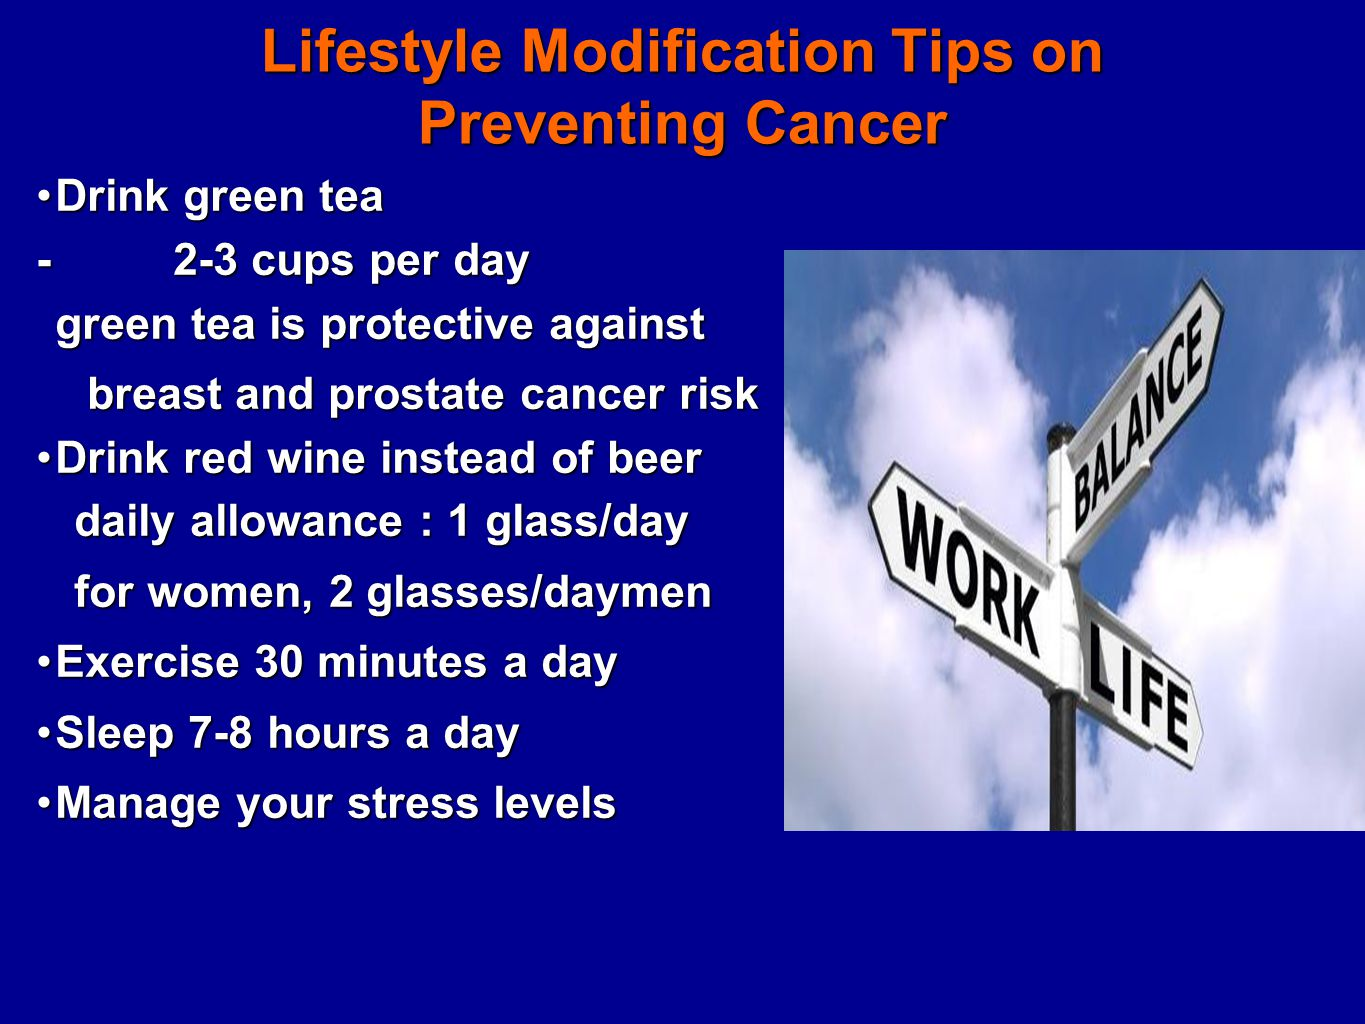 Lifestyle Modification Tips on Preventing Cancer Drink green teaDrink green tea - 2-3 cups per day green tea is protective against breast and prostate cancer risk breast and prostate cancer risk Drink red wine instead of beerDrink red wine instead of beer daily allowance : 1 glass/day daily allowance : 1 glass/day for women, 2 glasses/daymen for women, 2 glasses/daymen Exercise 30 minutes a dayExercise 30 minutes a day Sleep 7-8 hours a daySleep 7-8 hours a day Manage your stress levelsManage your stress levels